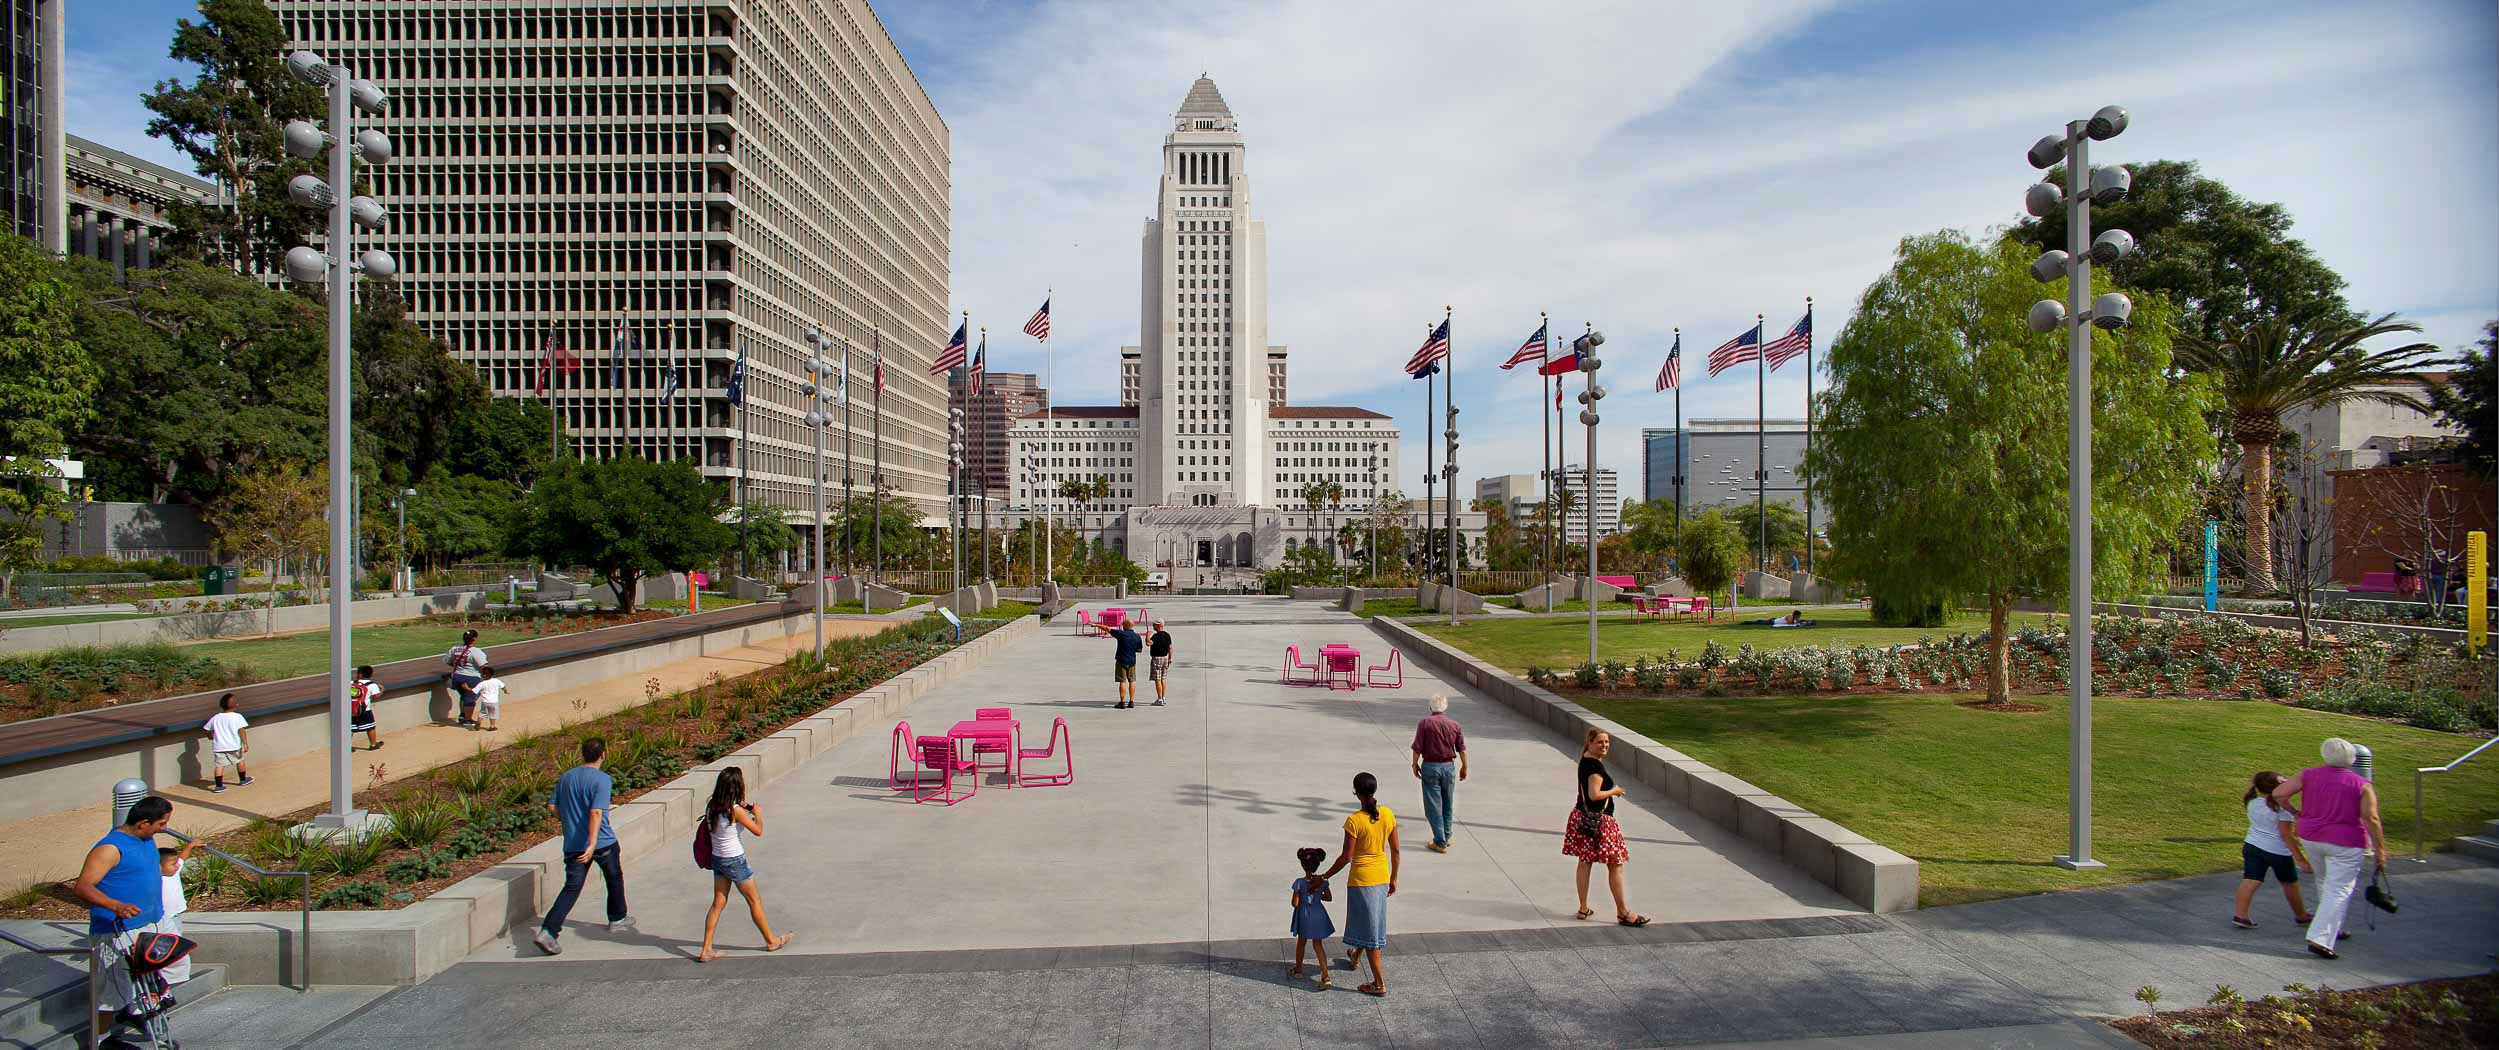 grand park pathway in between grassy lawns with people walking throughout the park and city hall in the center background